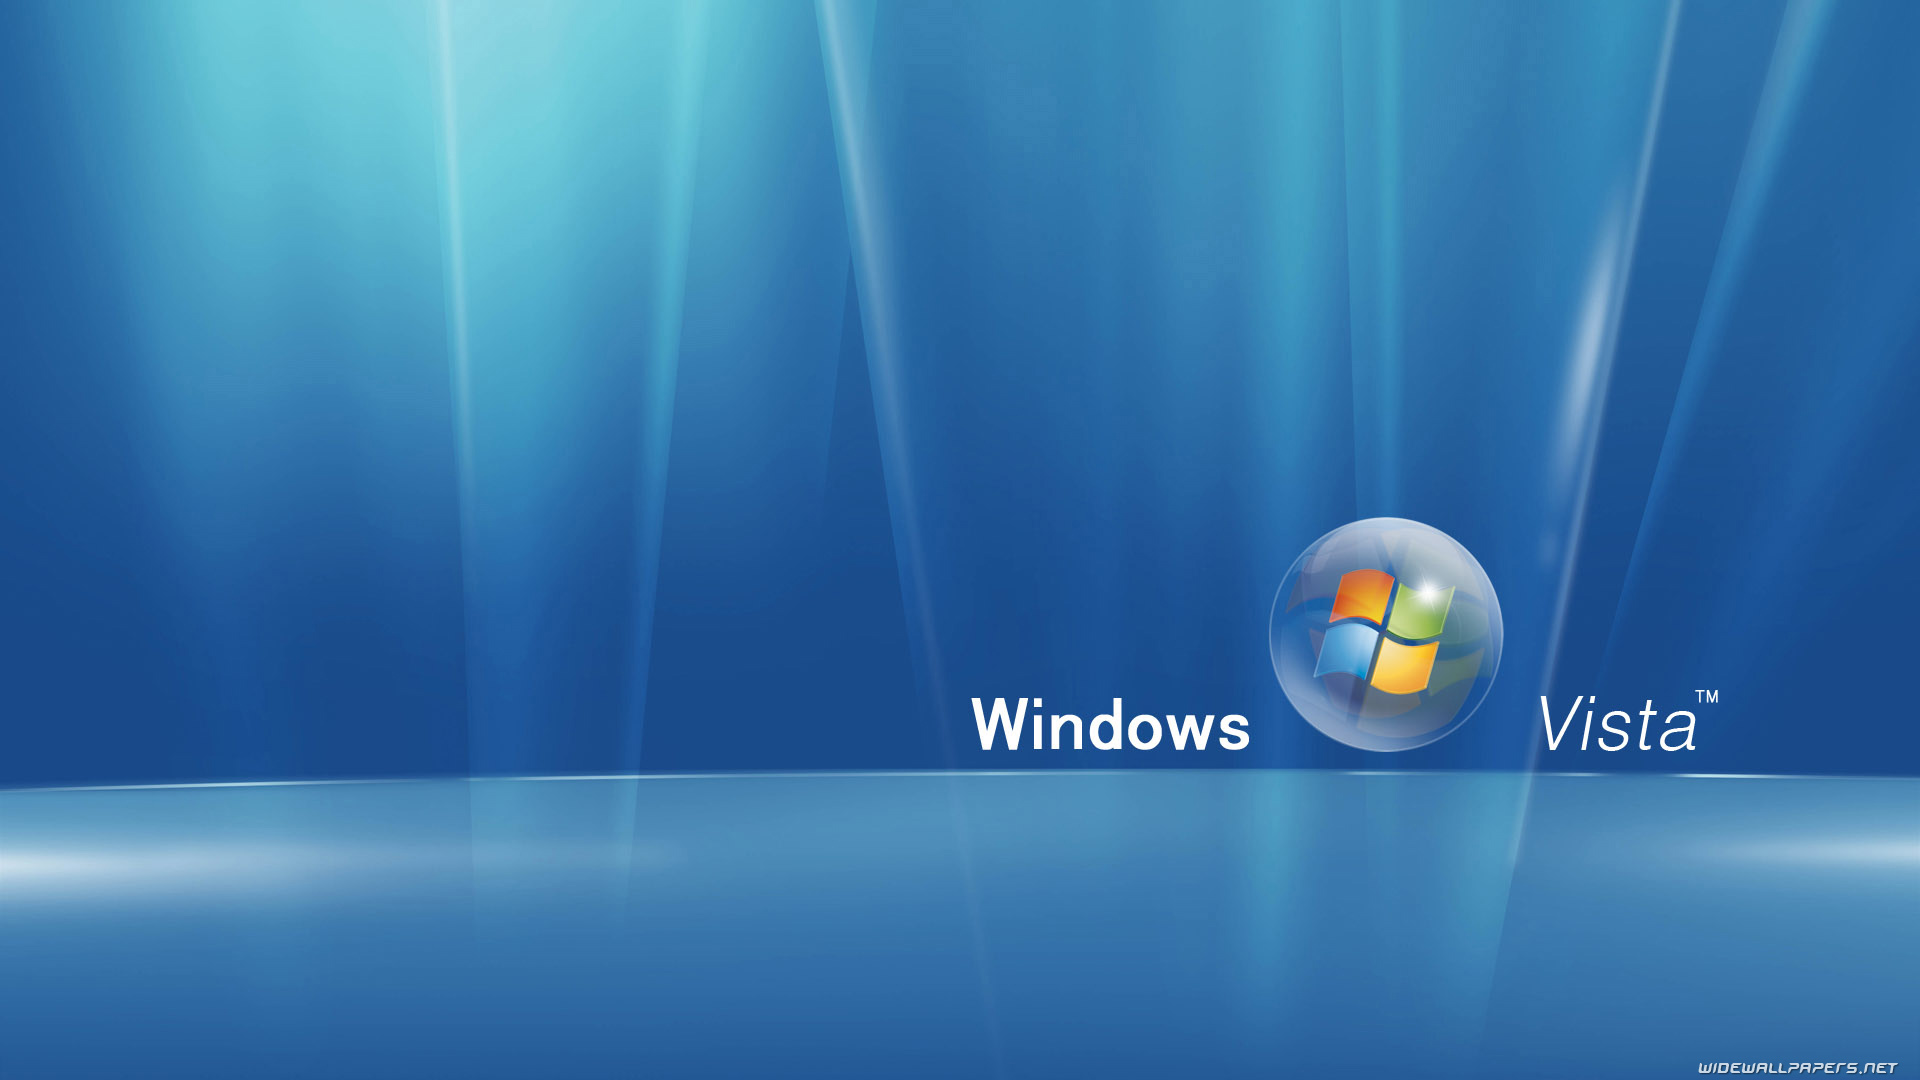 windows vista wallpaper 1920x1080 007   Wallpaper Hd 3D 1920x1080